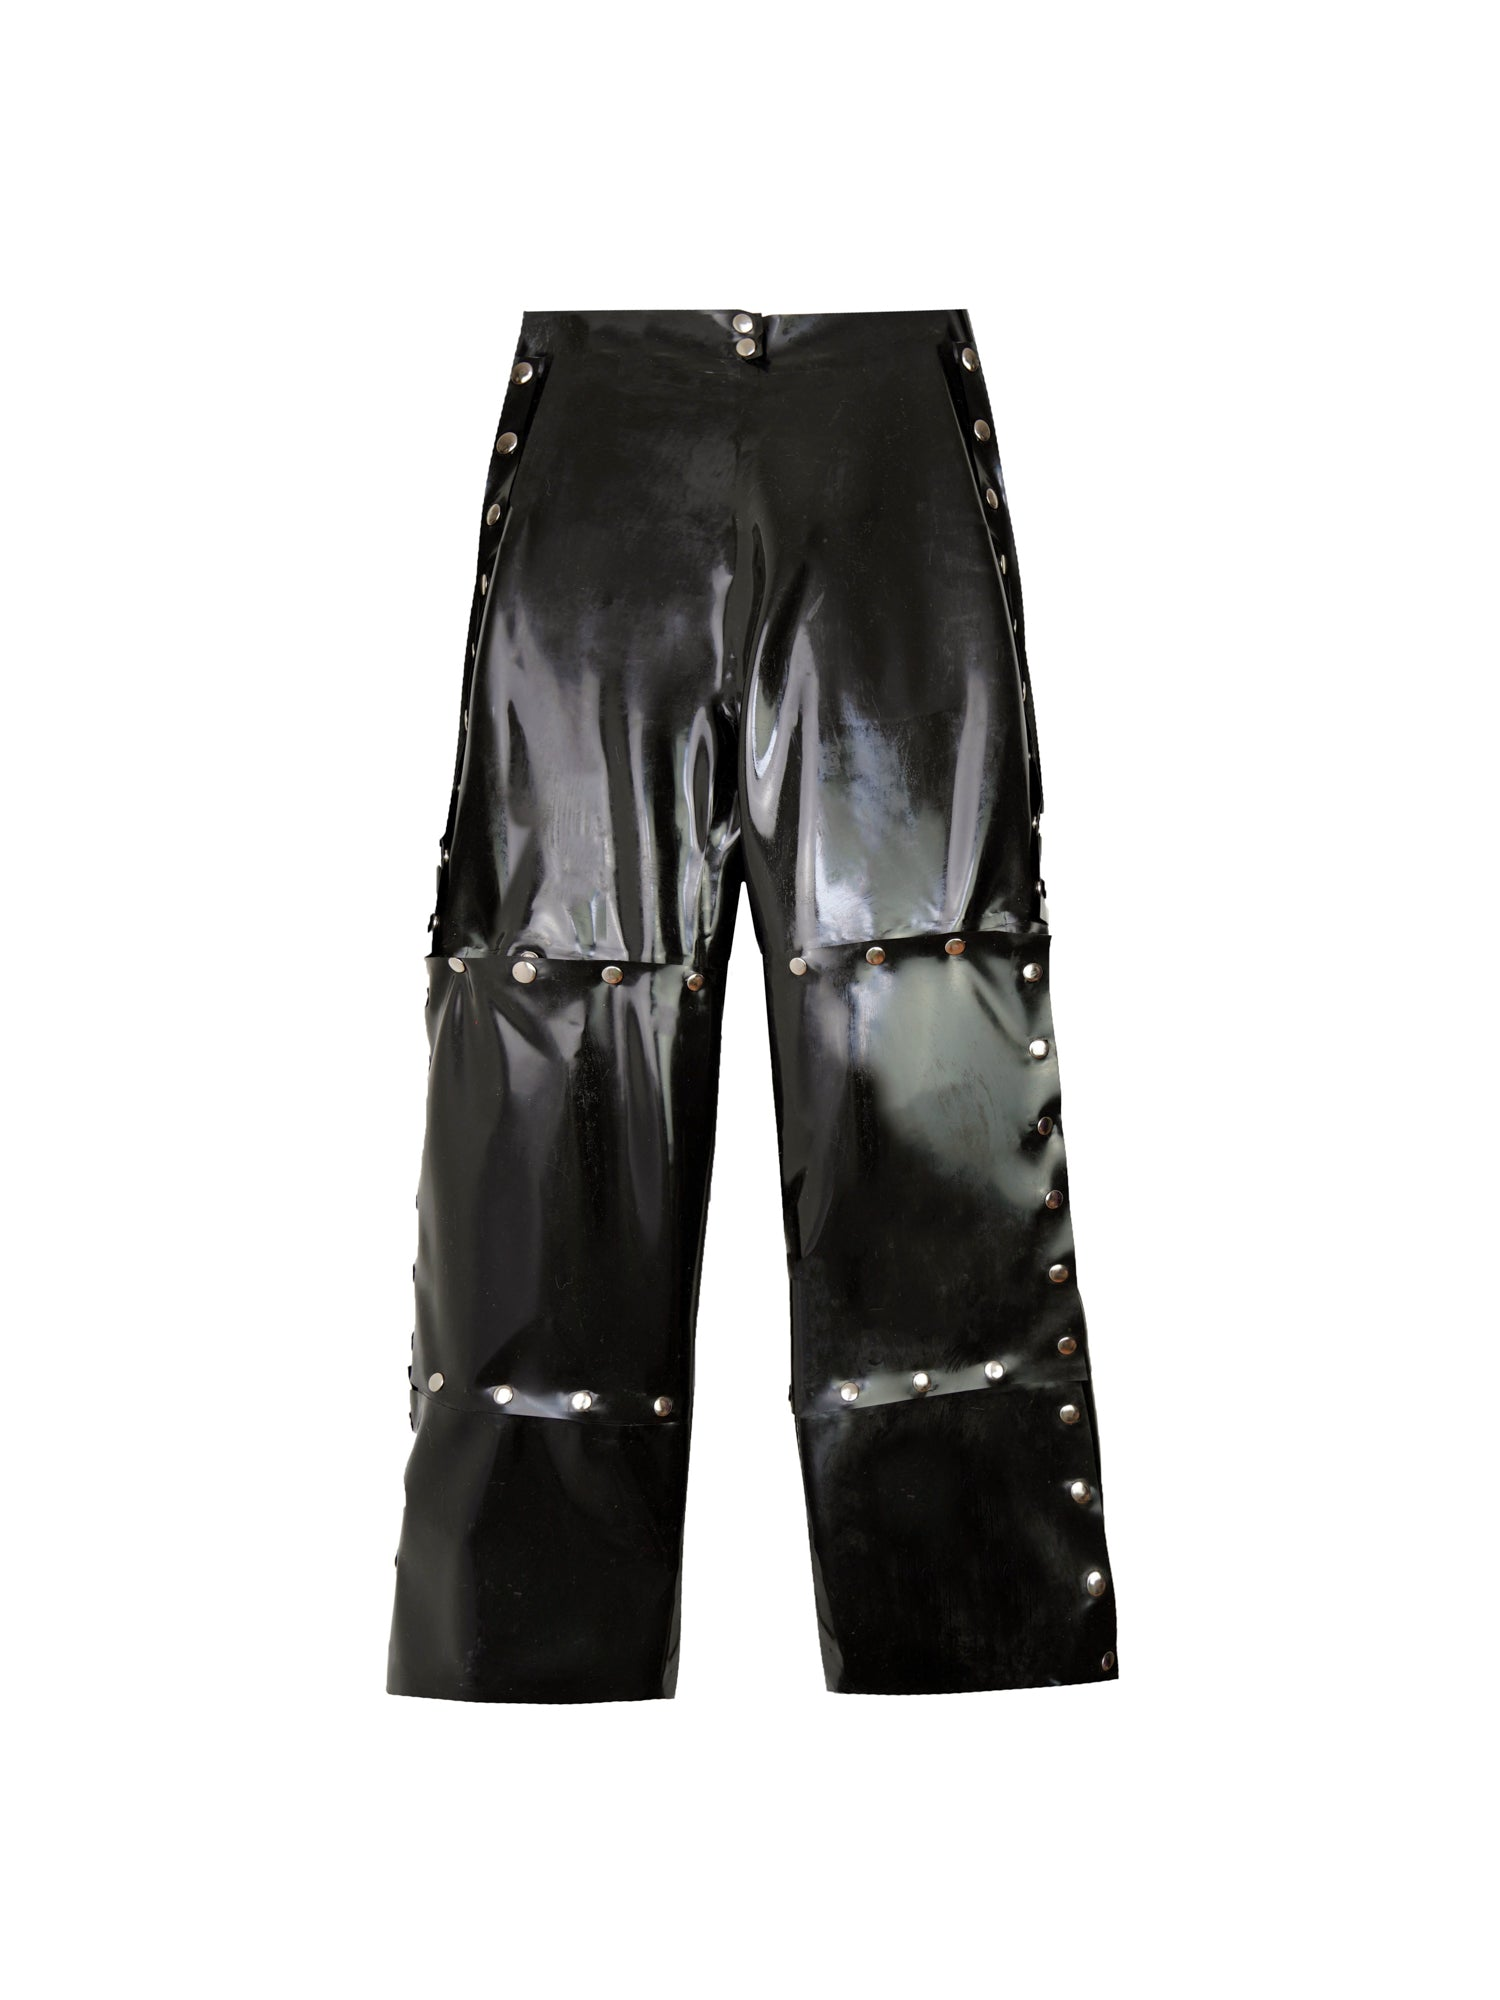 Studio Fclx PANDEMIC V Snap Button Latex Trousers